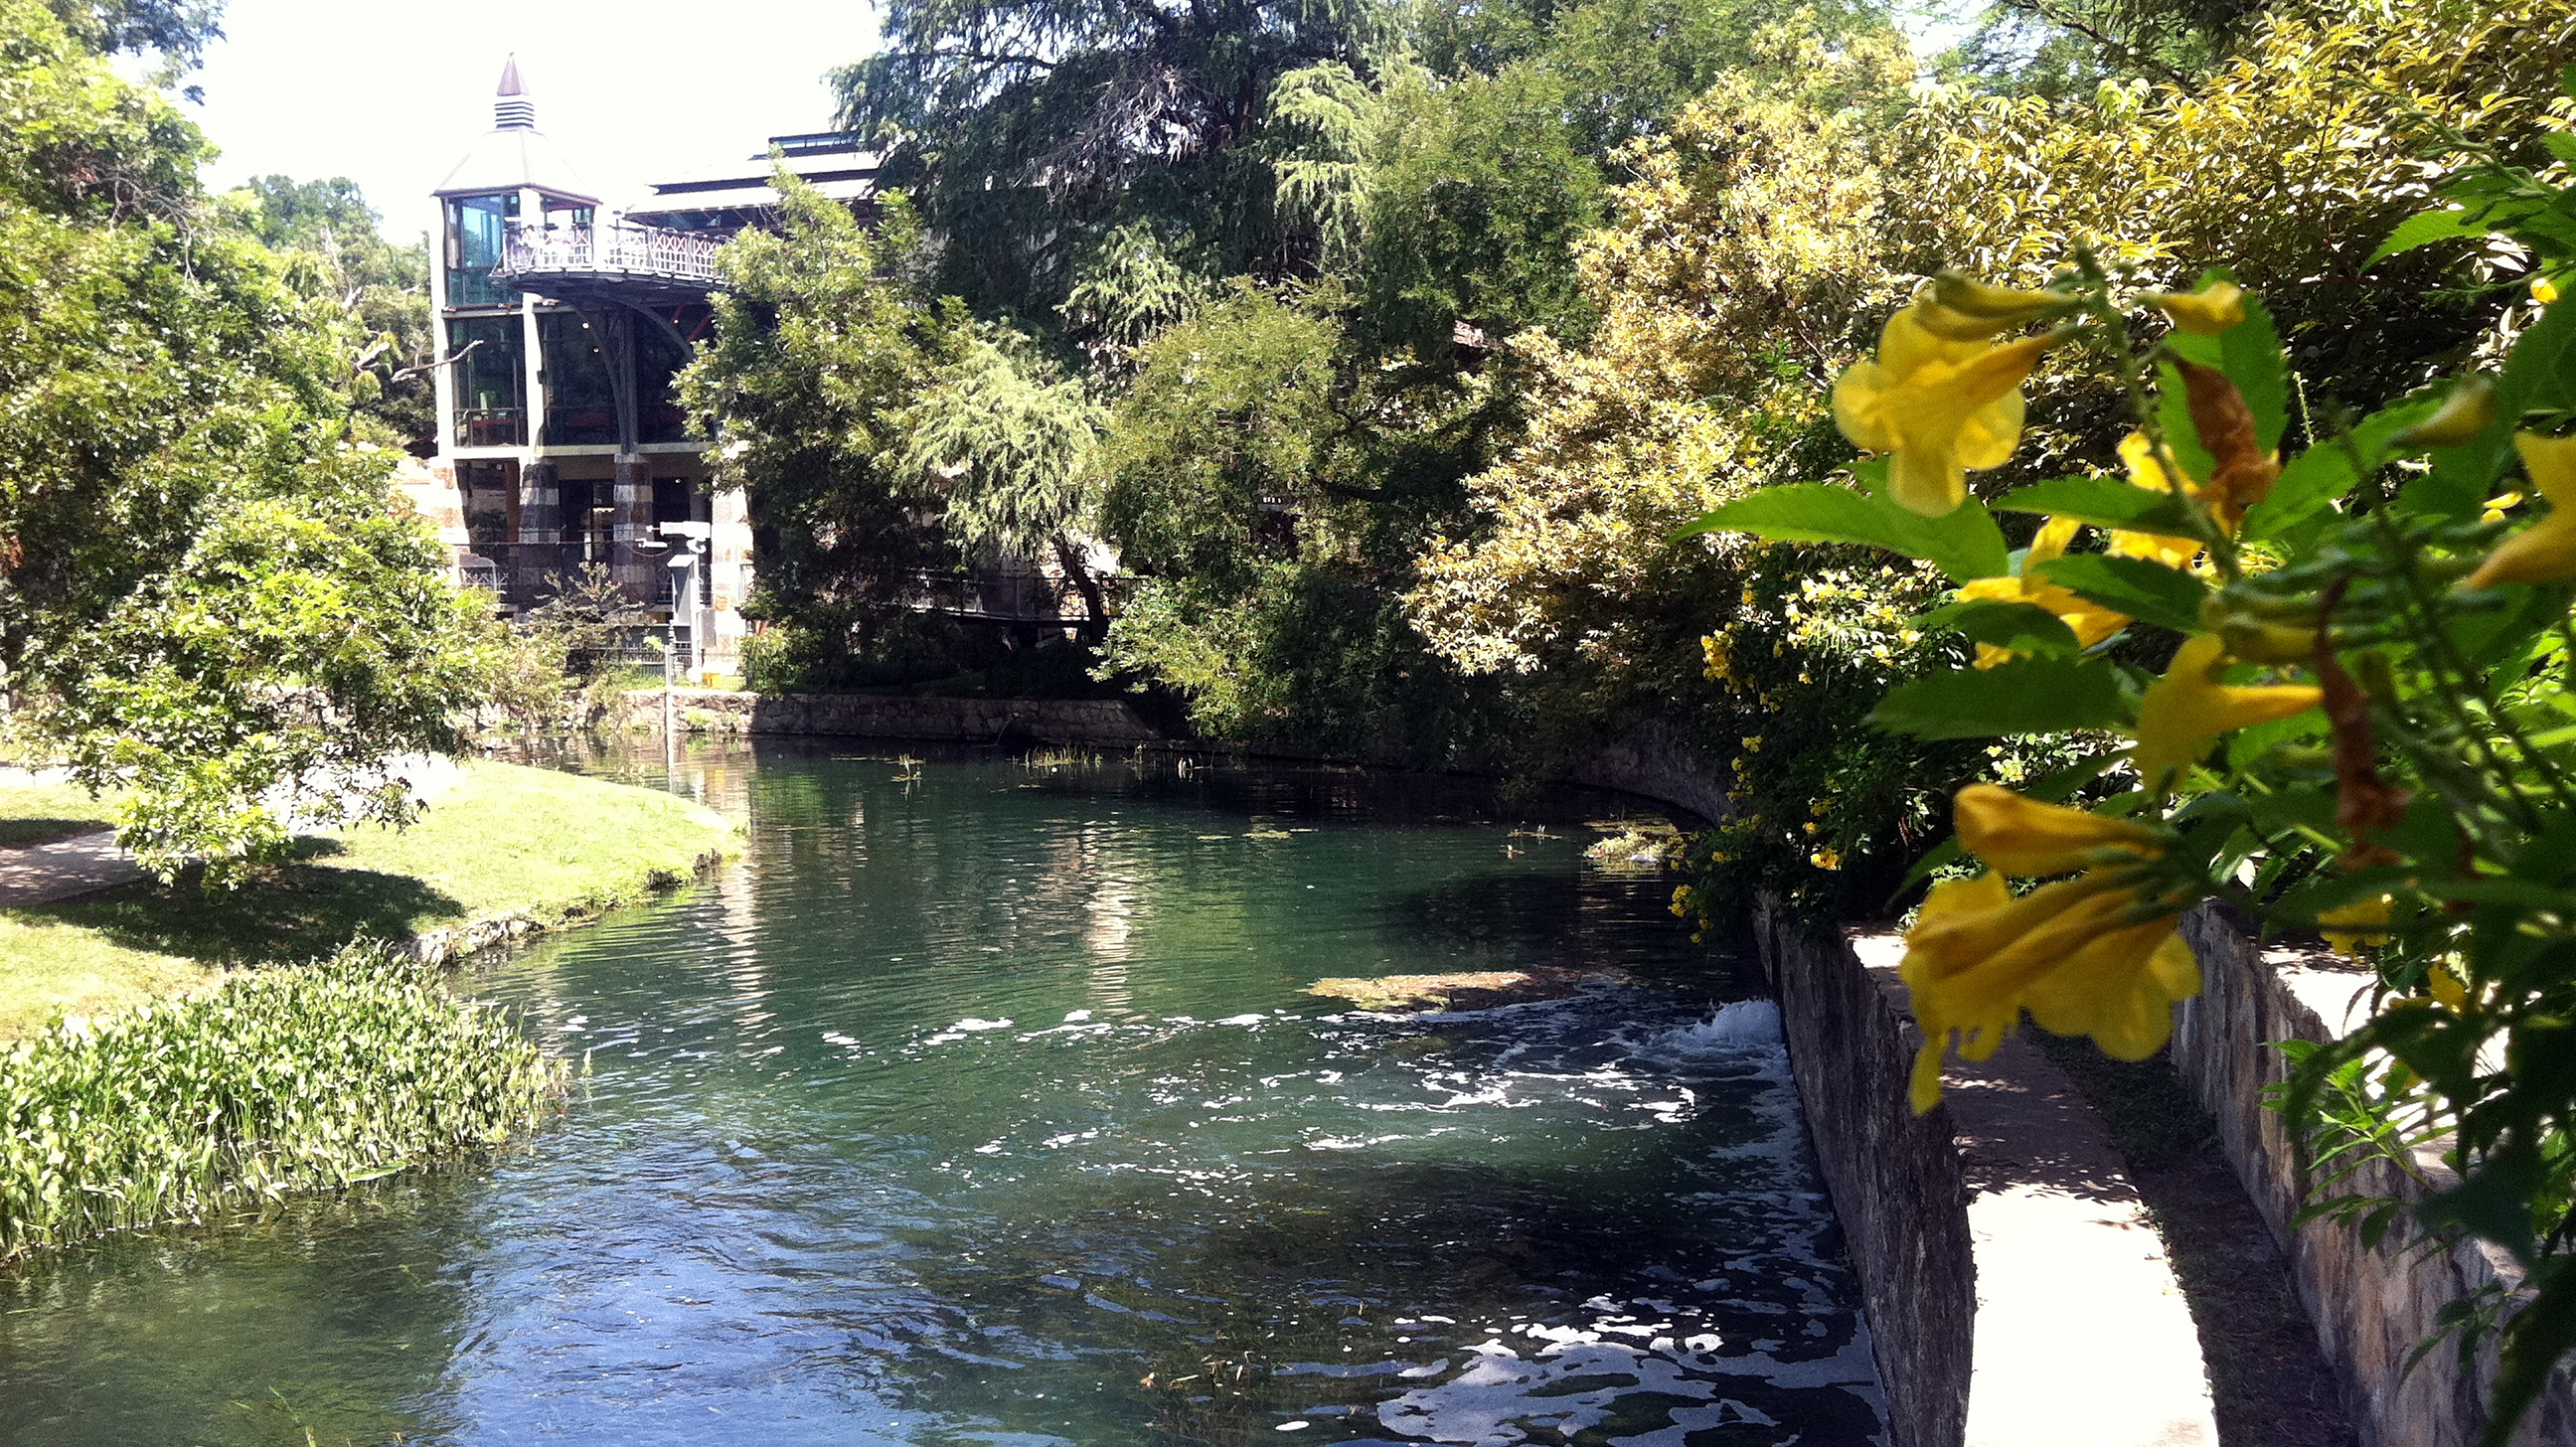 An area in San Antonio's Brackenridge Park where treated wastewater is pumped into the San Antonio River, one of many measures the city has taken to combat drought.